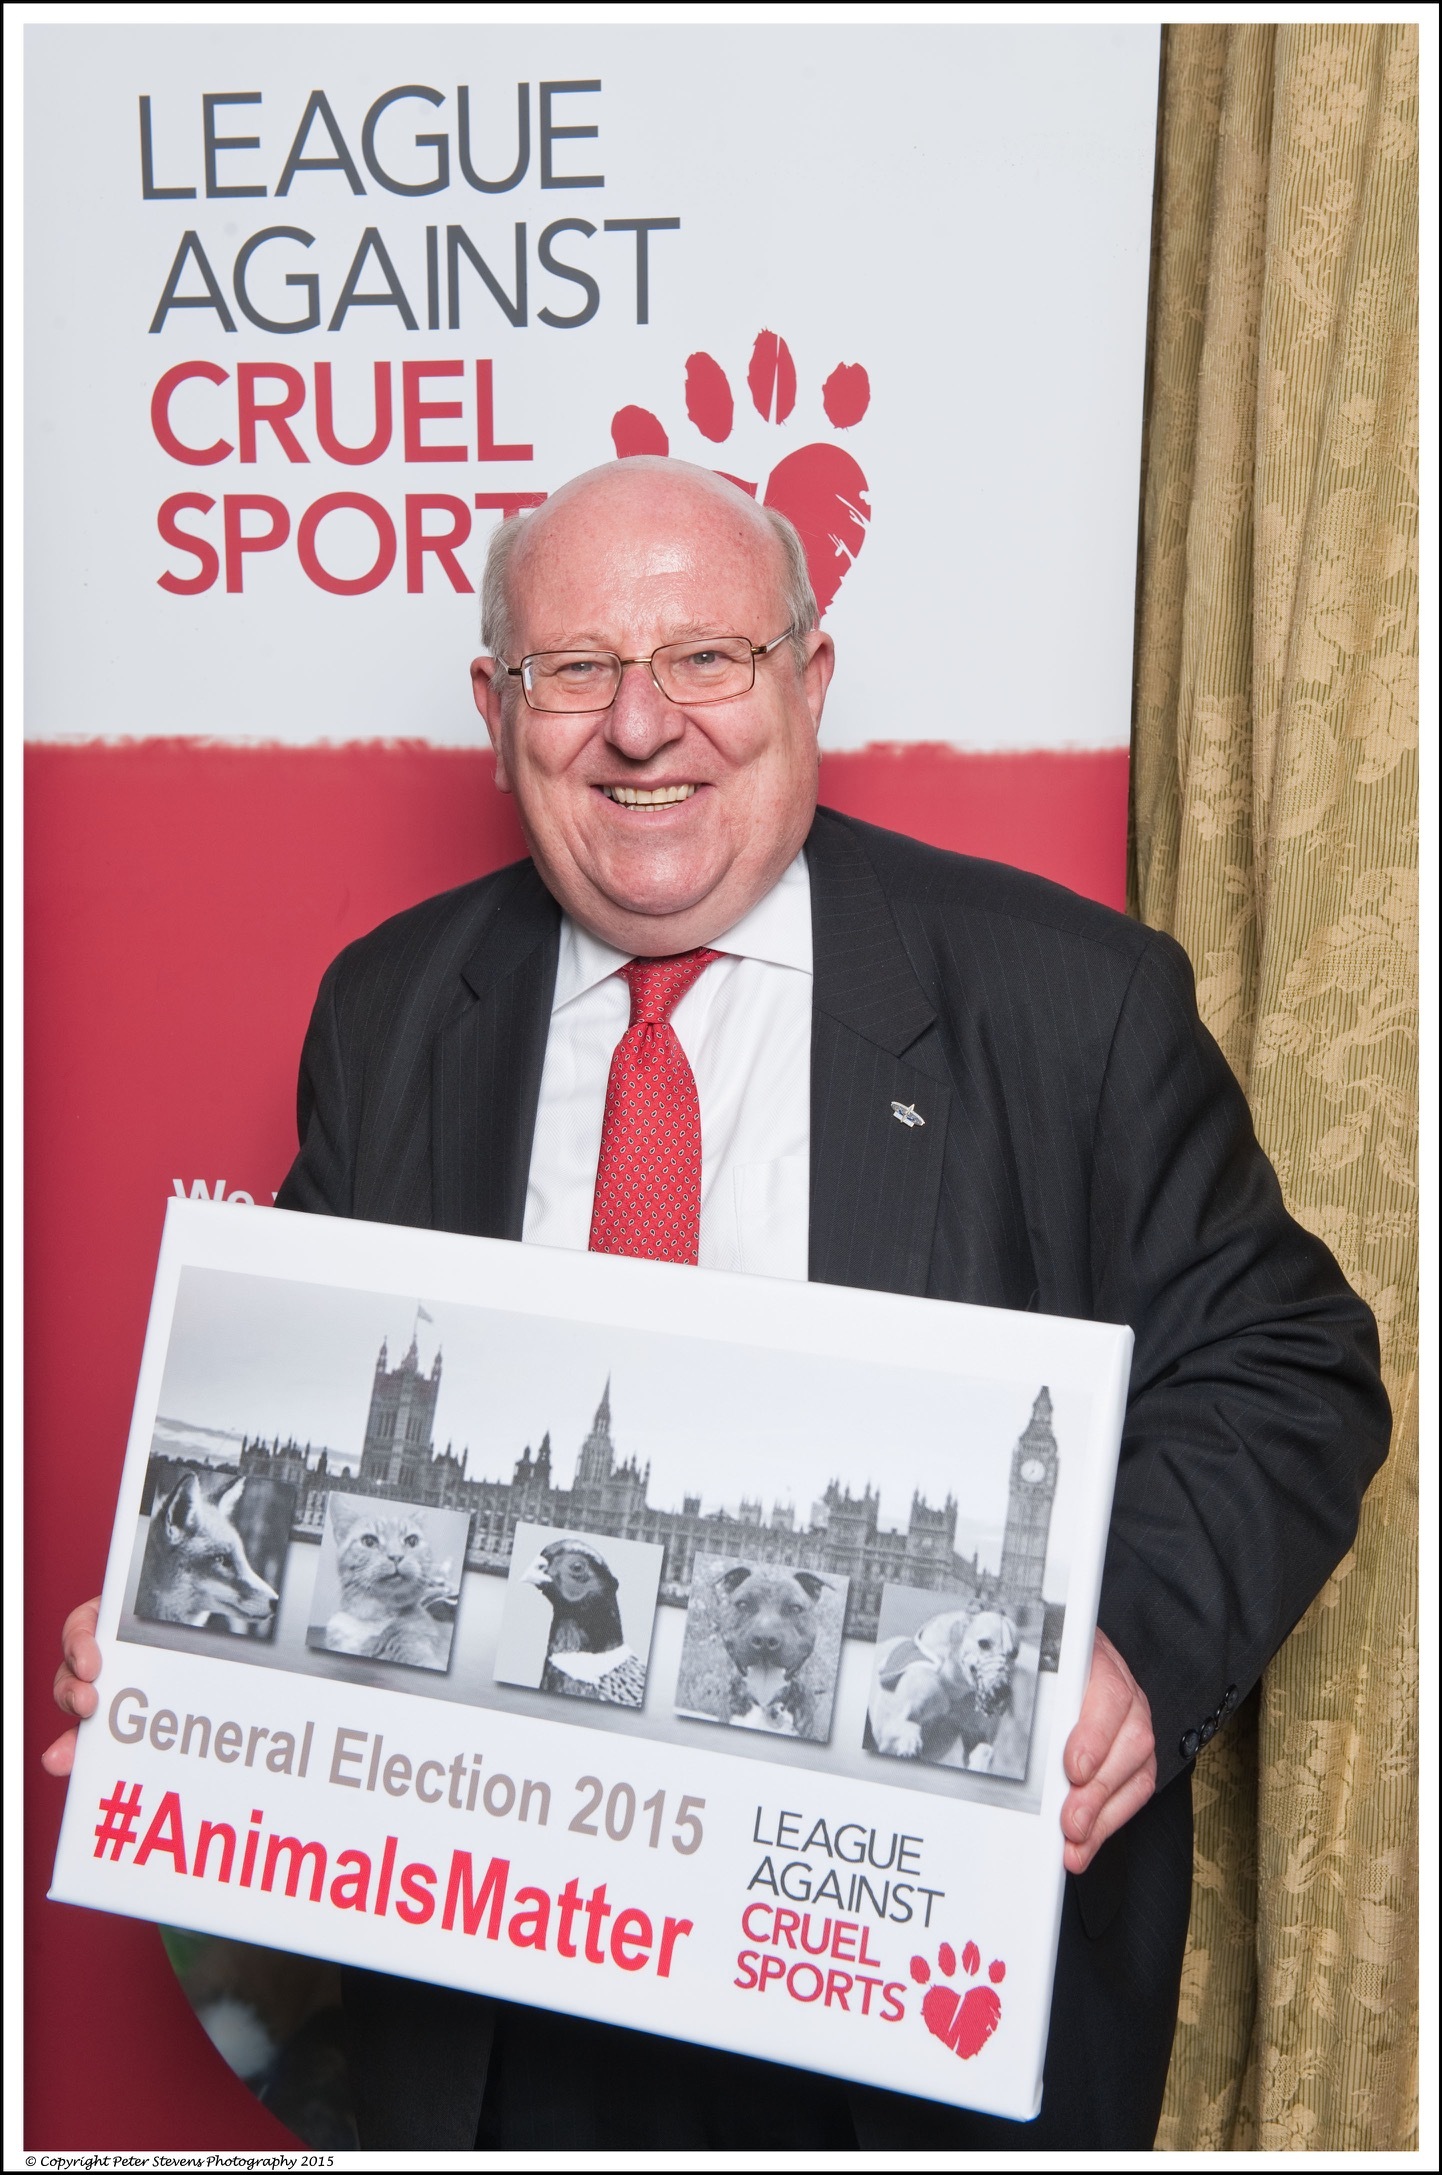 Mike Gapes supporting animal welfare